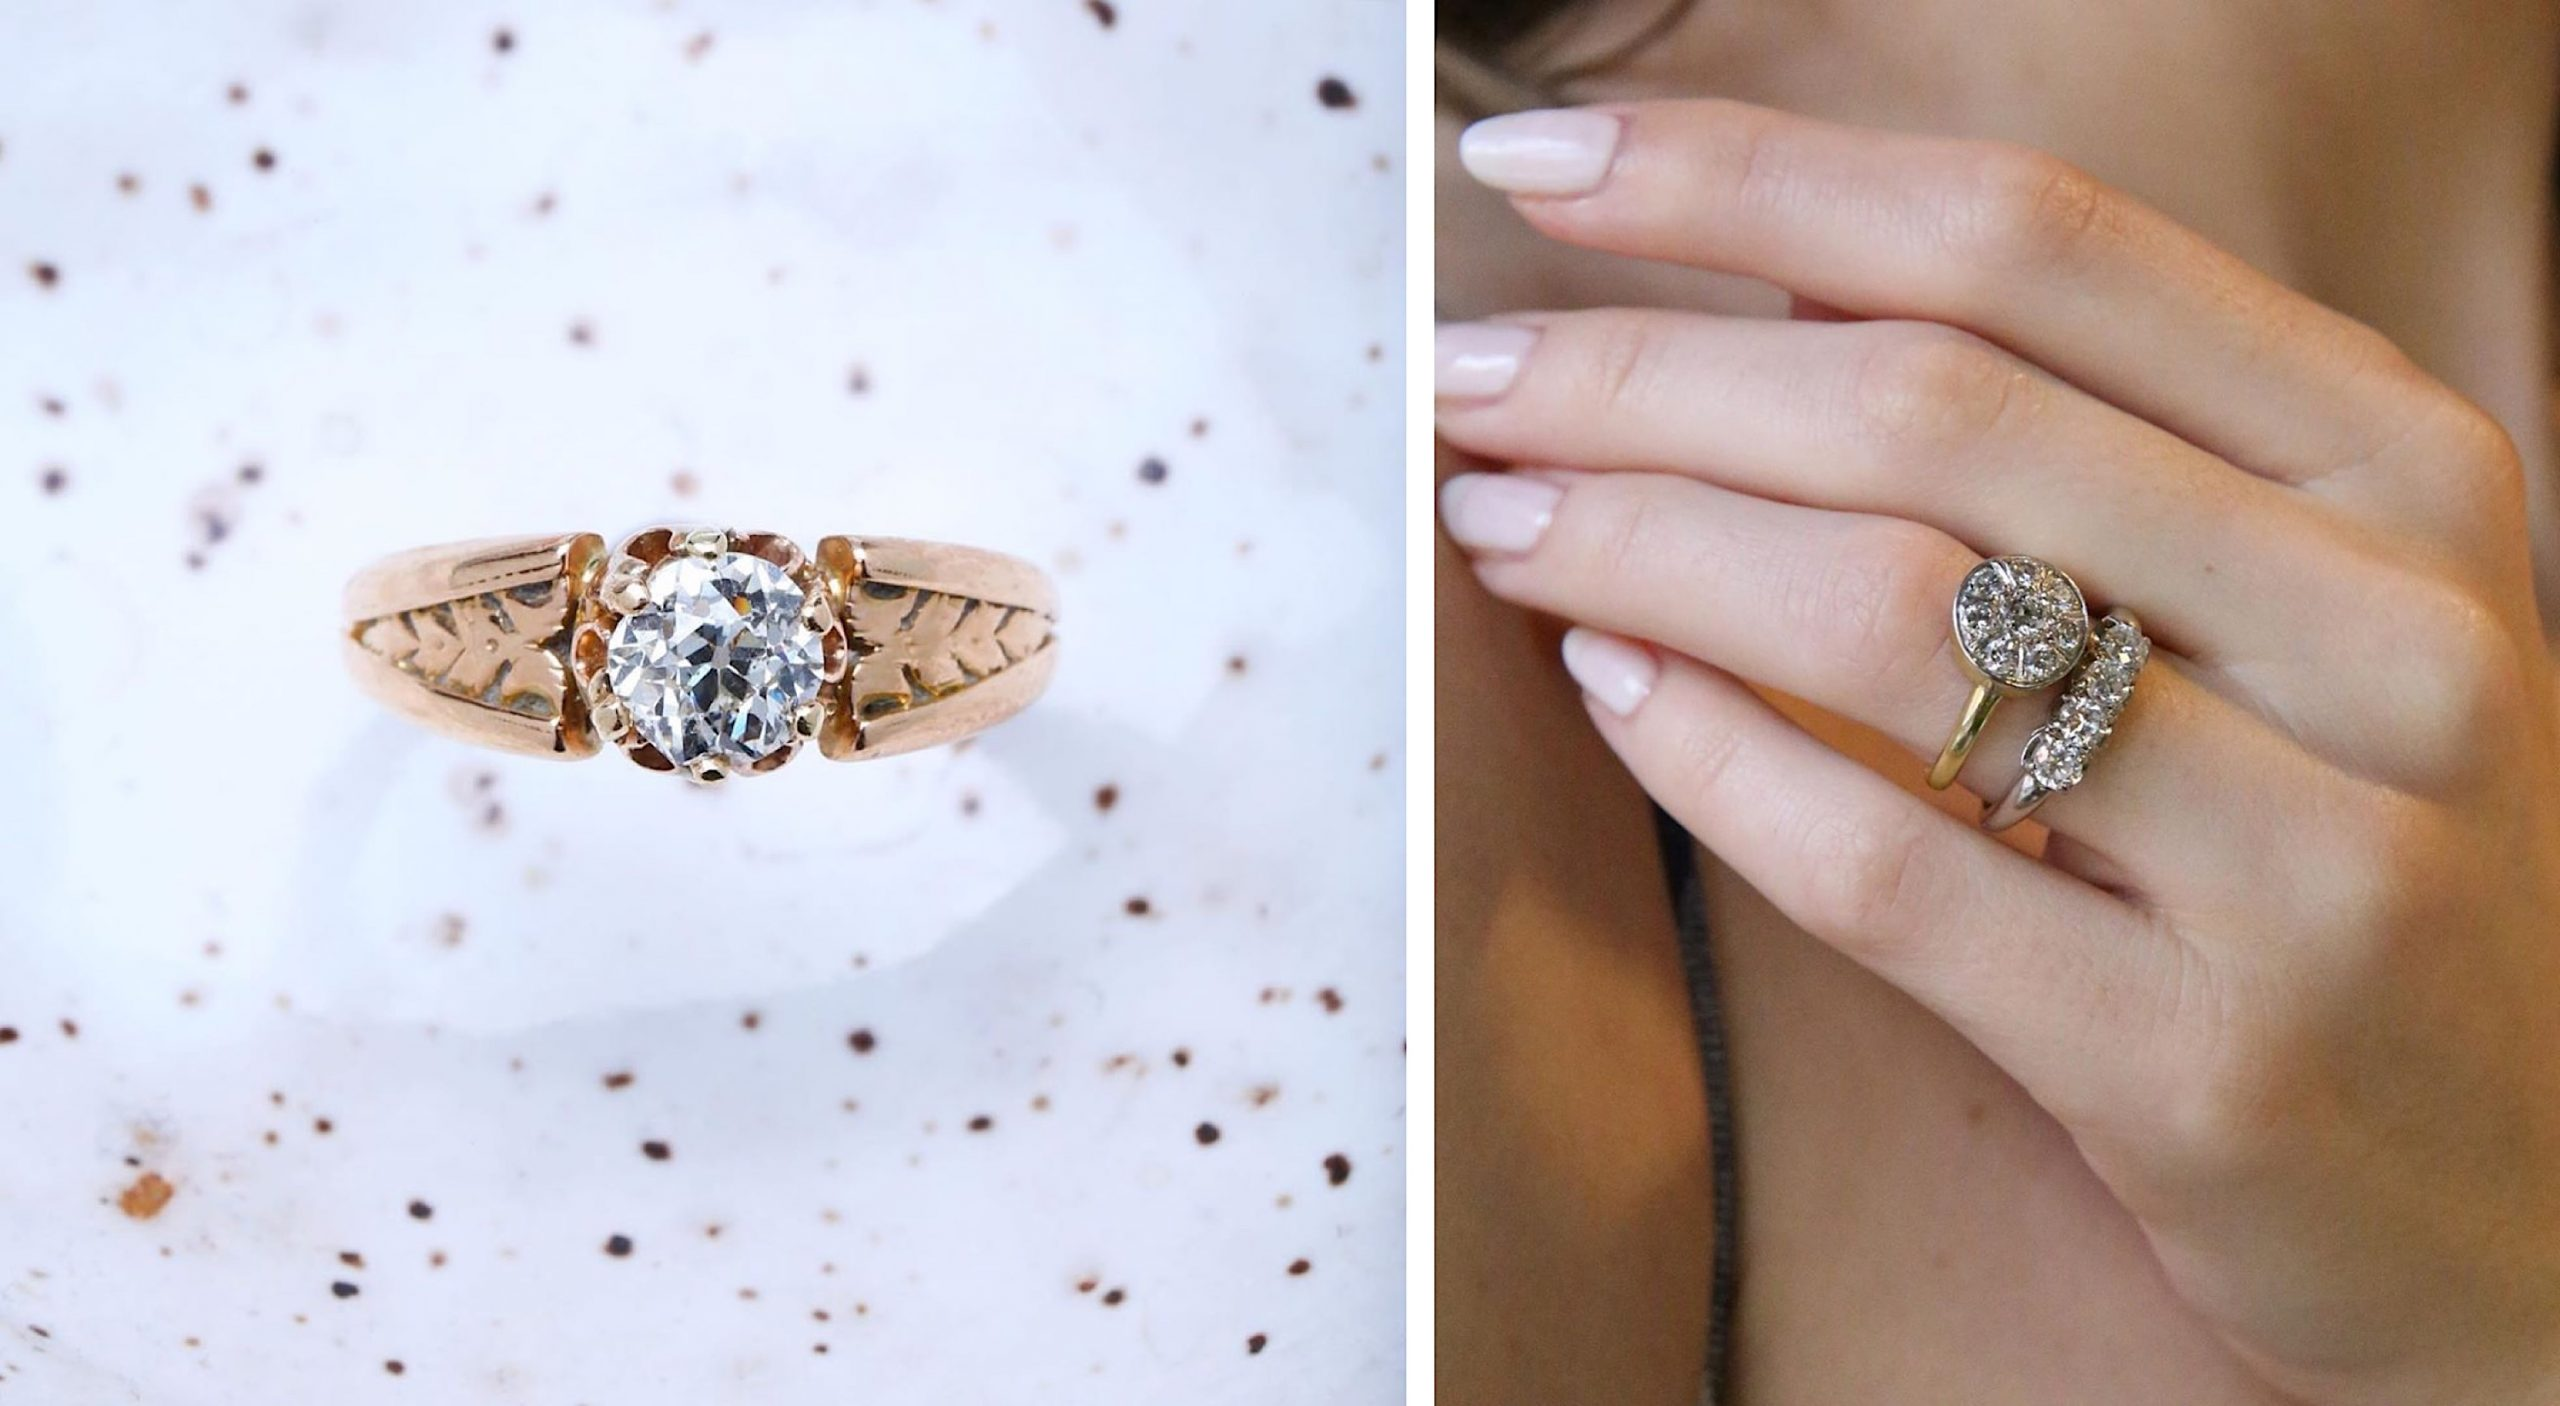 An eco-friendly vintage gold and diamond solitaire ring against a speckled background, next to a photo of two chunky diamond rings being worn by a model.